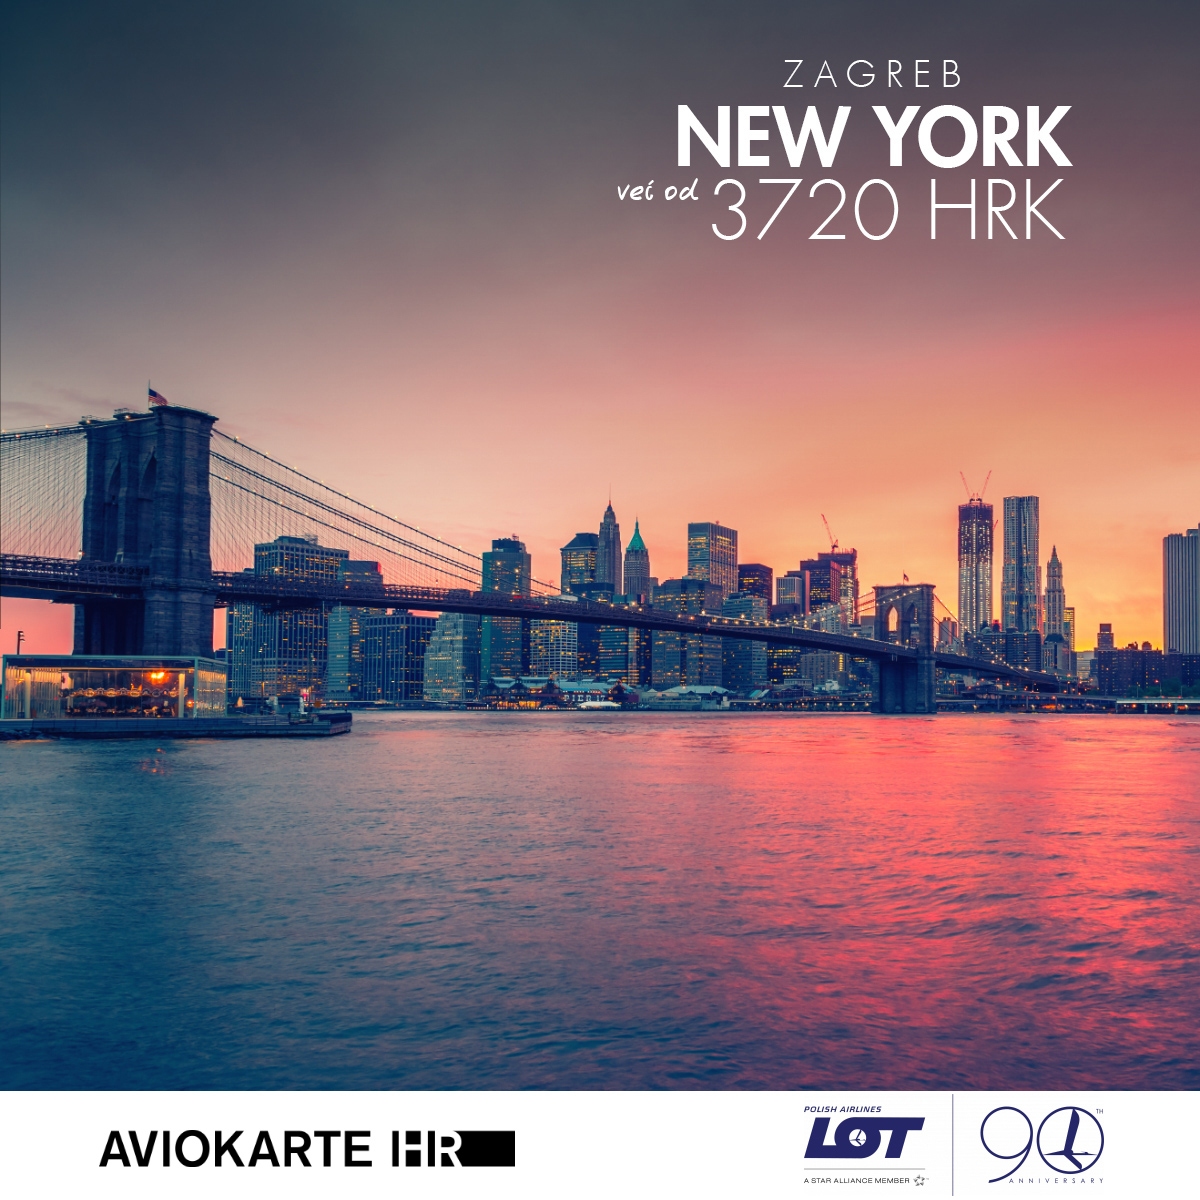 New York vizual, New York već od 1400 kuna, New York jeftine avio karte, putovanje za New York